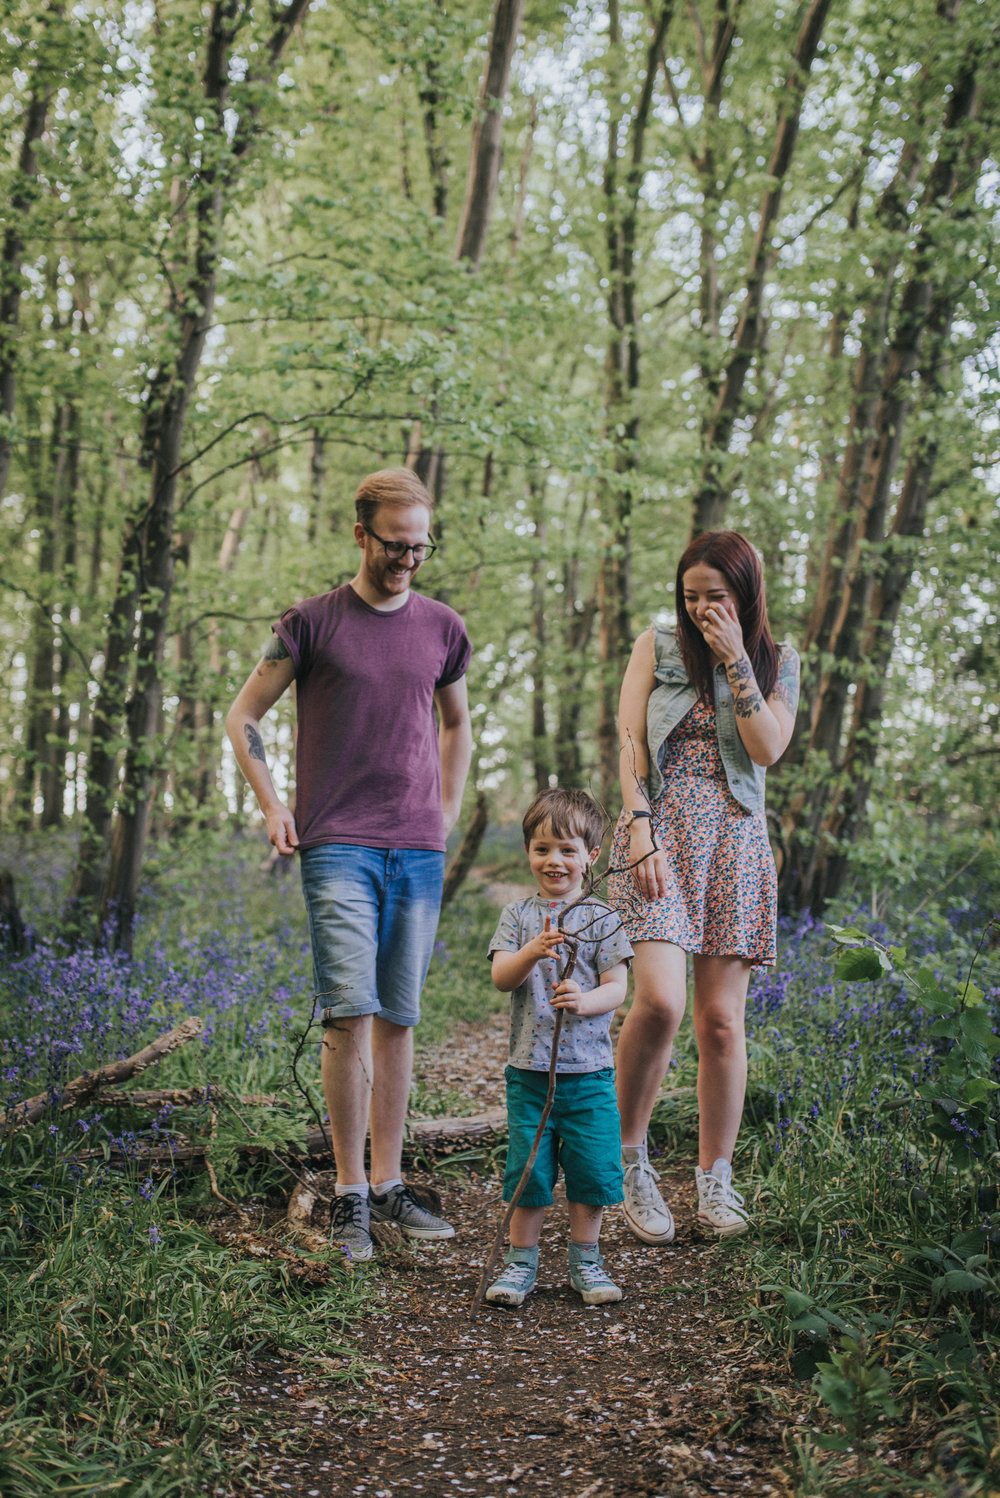 Fun family photoshoot at Heartwood Forest in St Albans , Hertfordshire